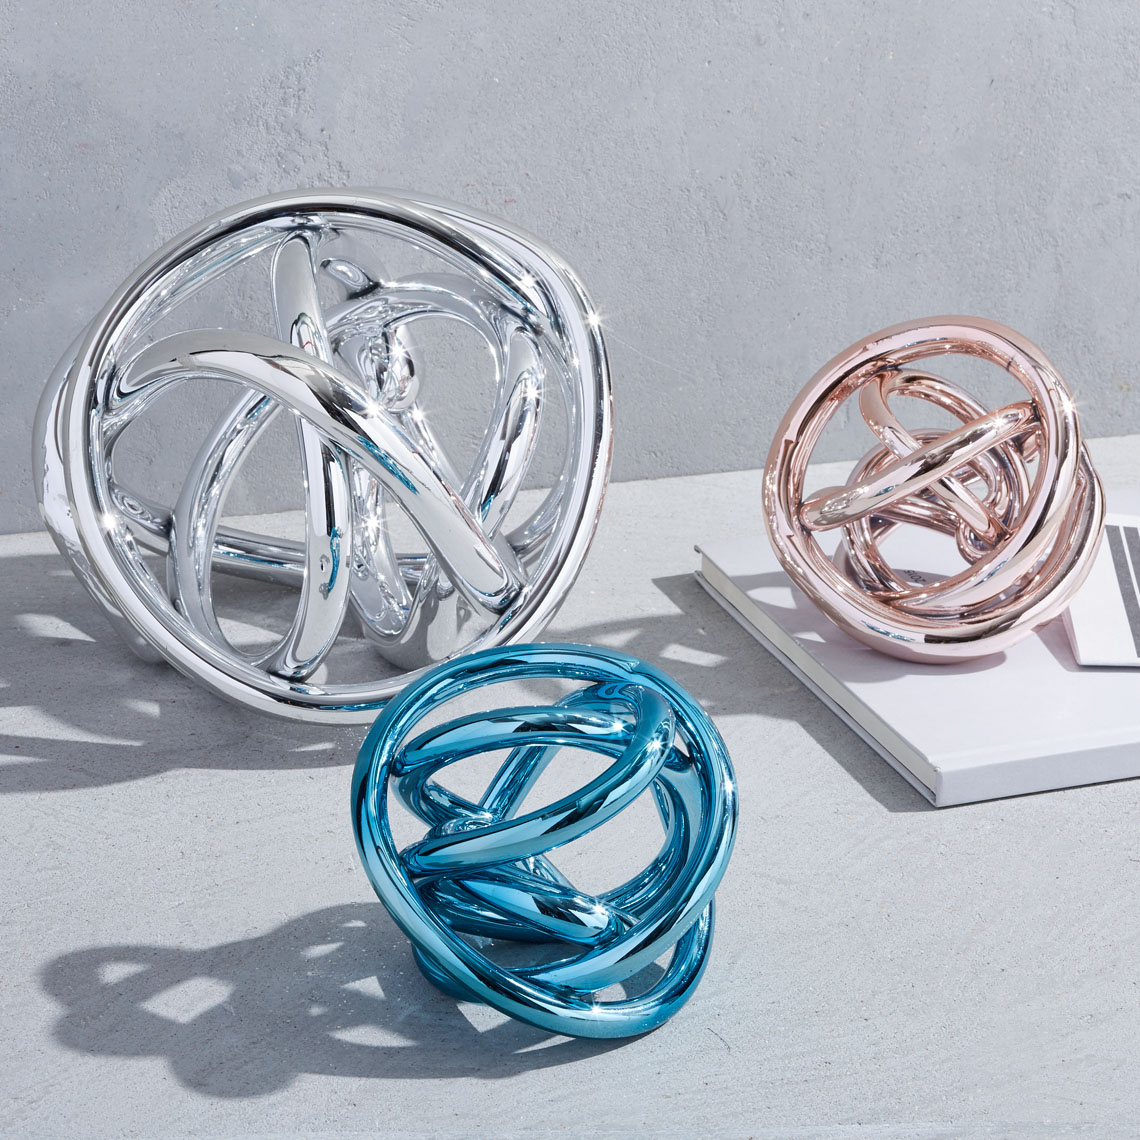 pip-metallic-glass-knots-group-su17-041